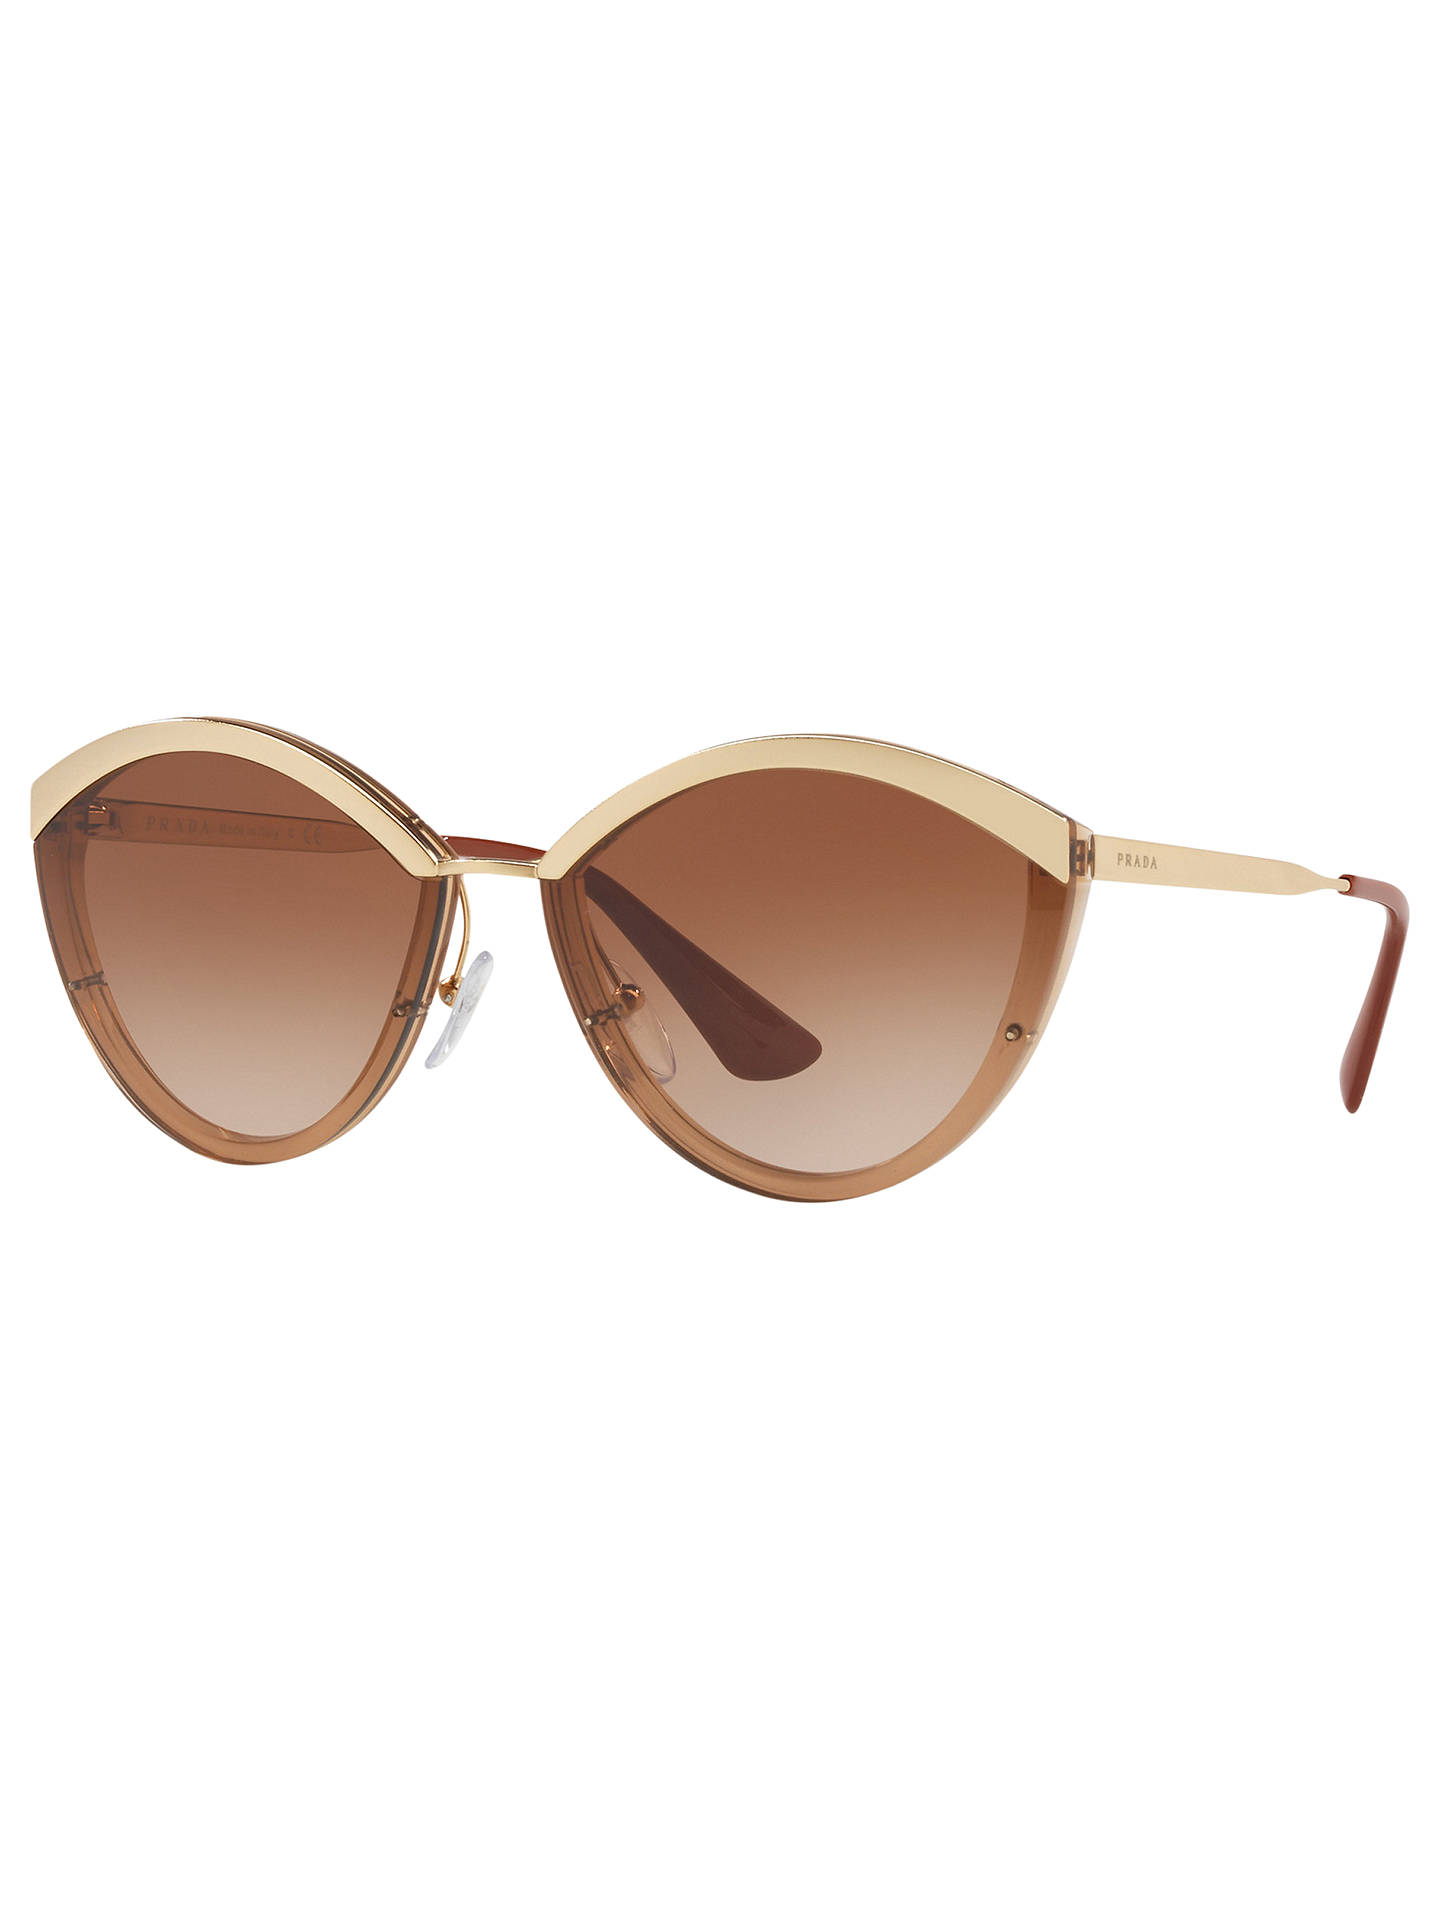 BuyPrada PR 07US Oval Sunglasses, Brown/Gold Online at johnlewis.com